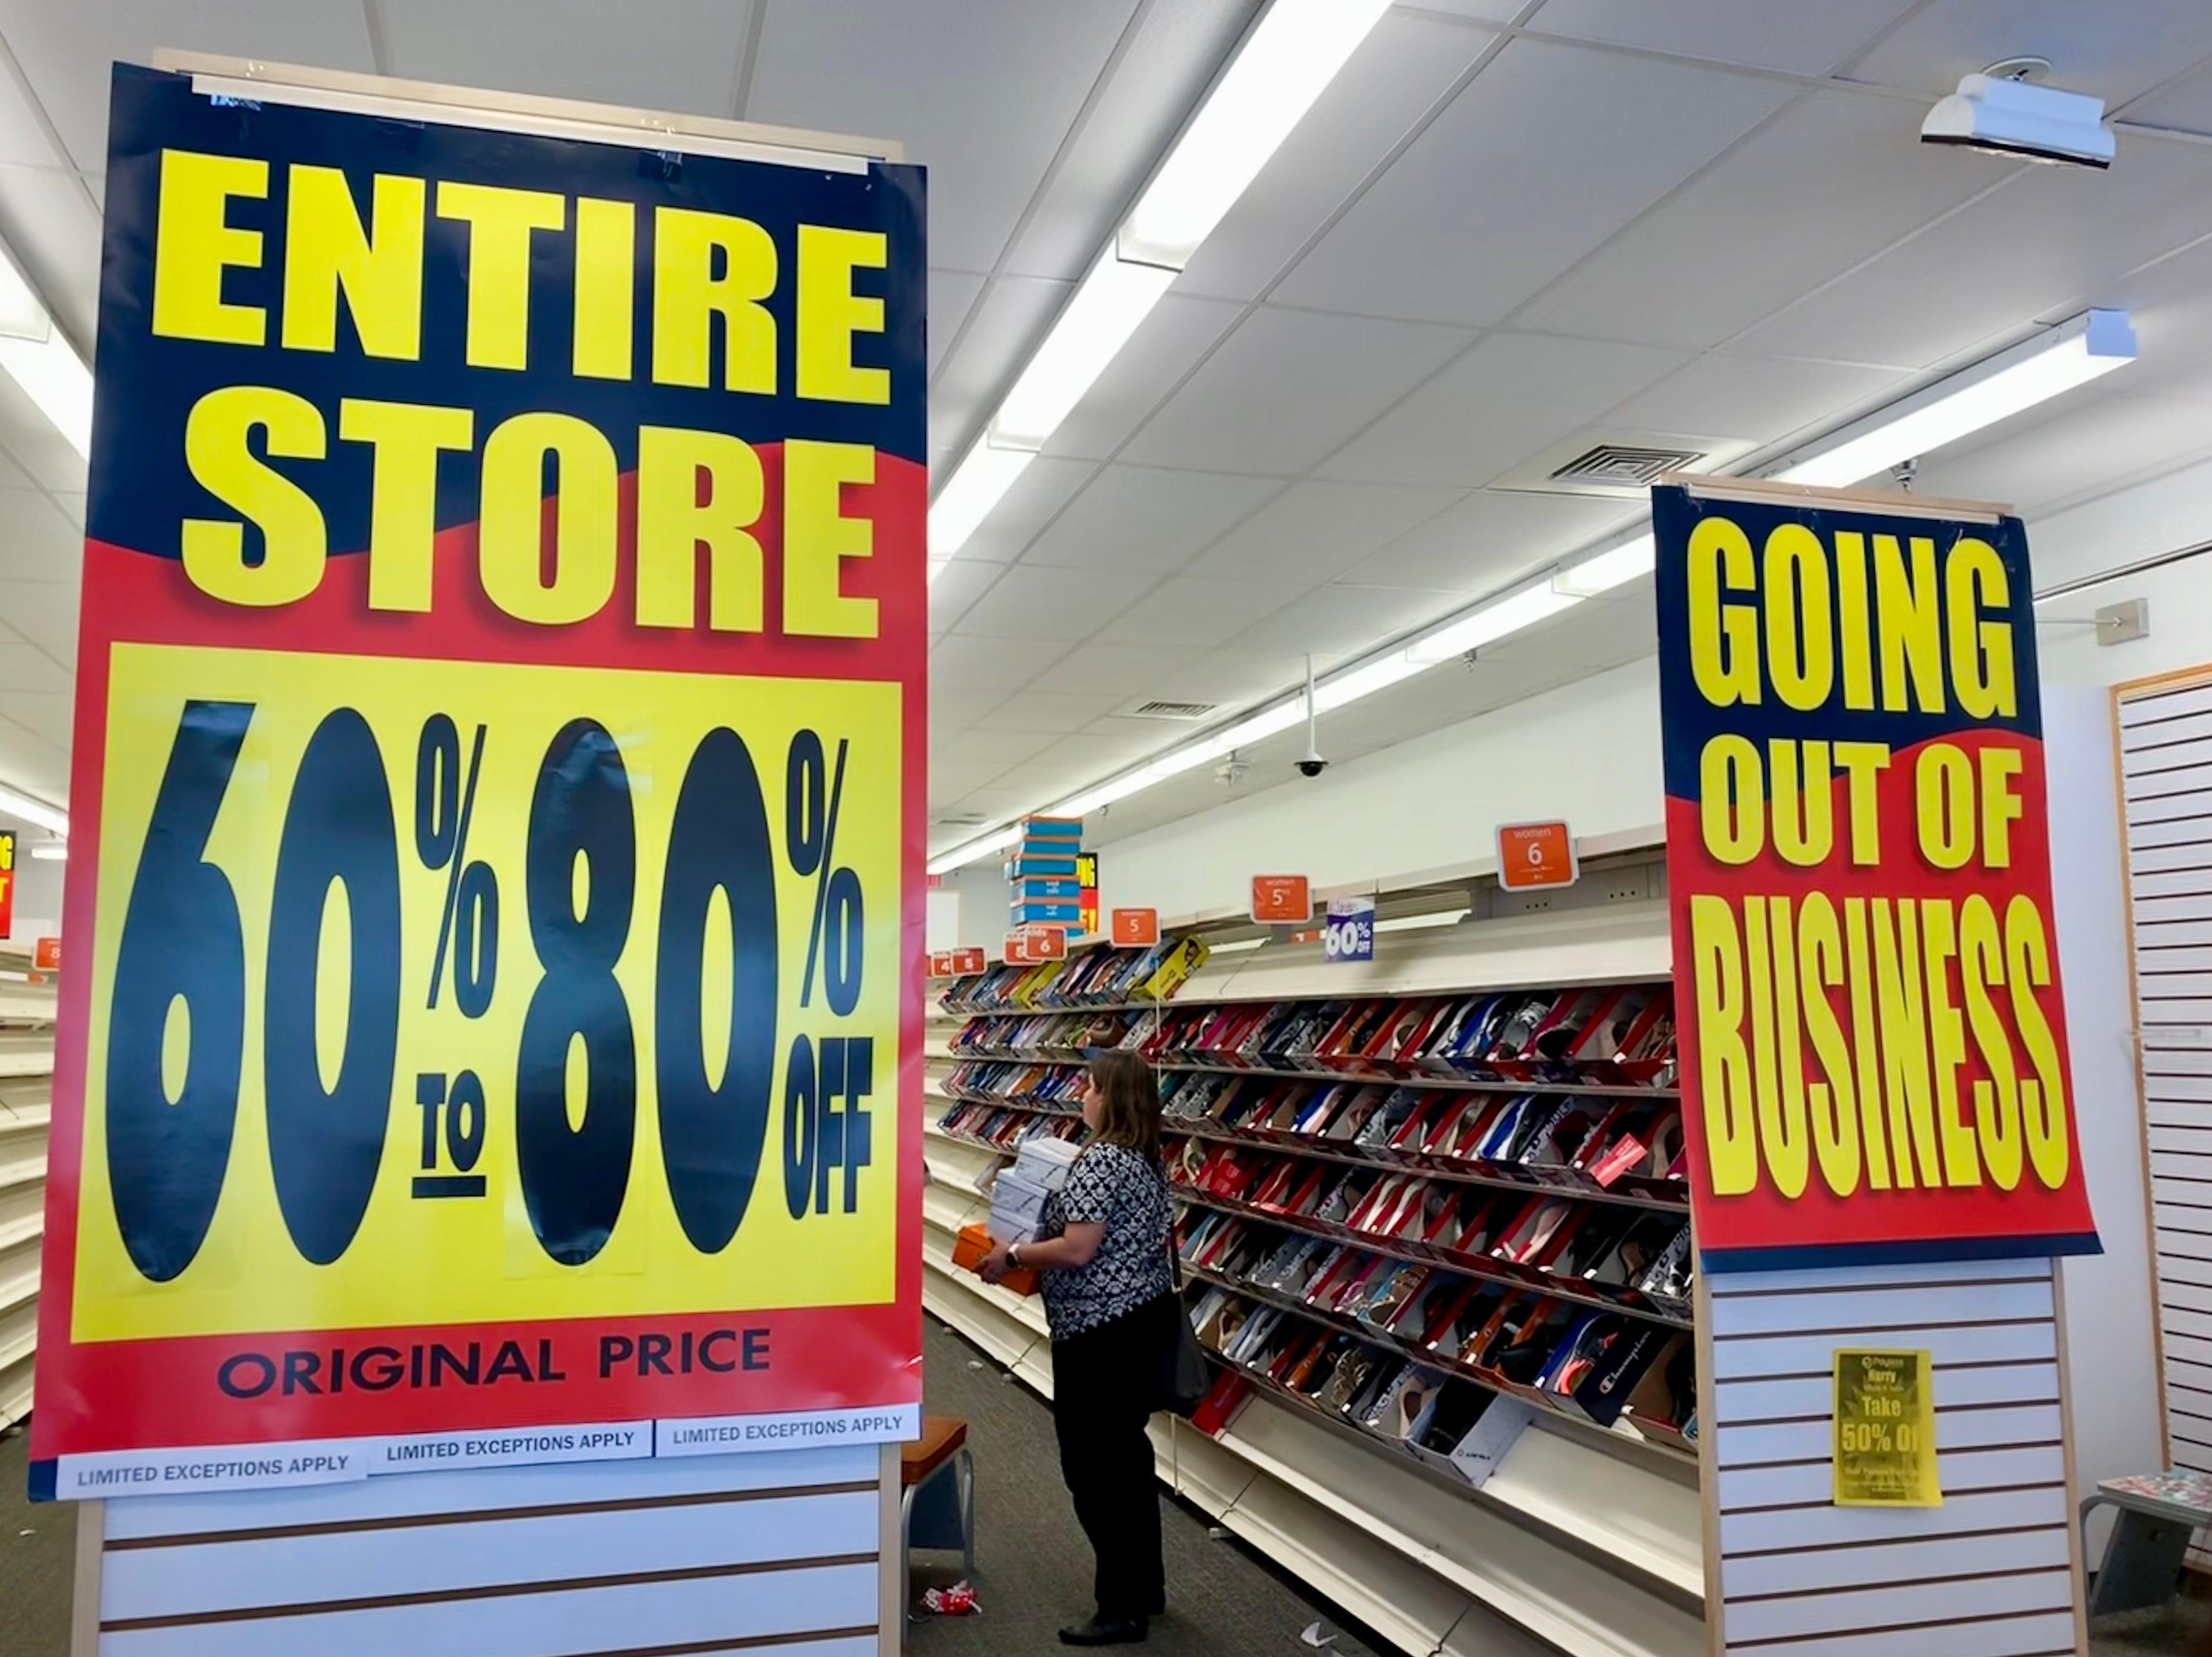 Death of a retailer: Creditors claim hedge fund may be to blame for Payless' bankruptcy